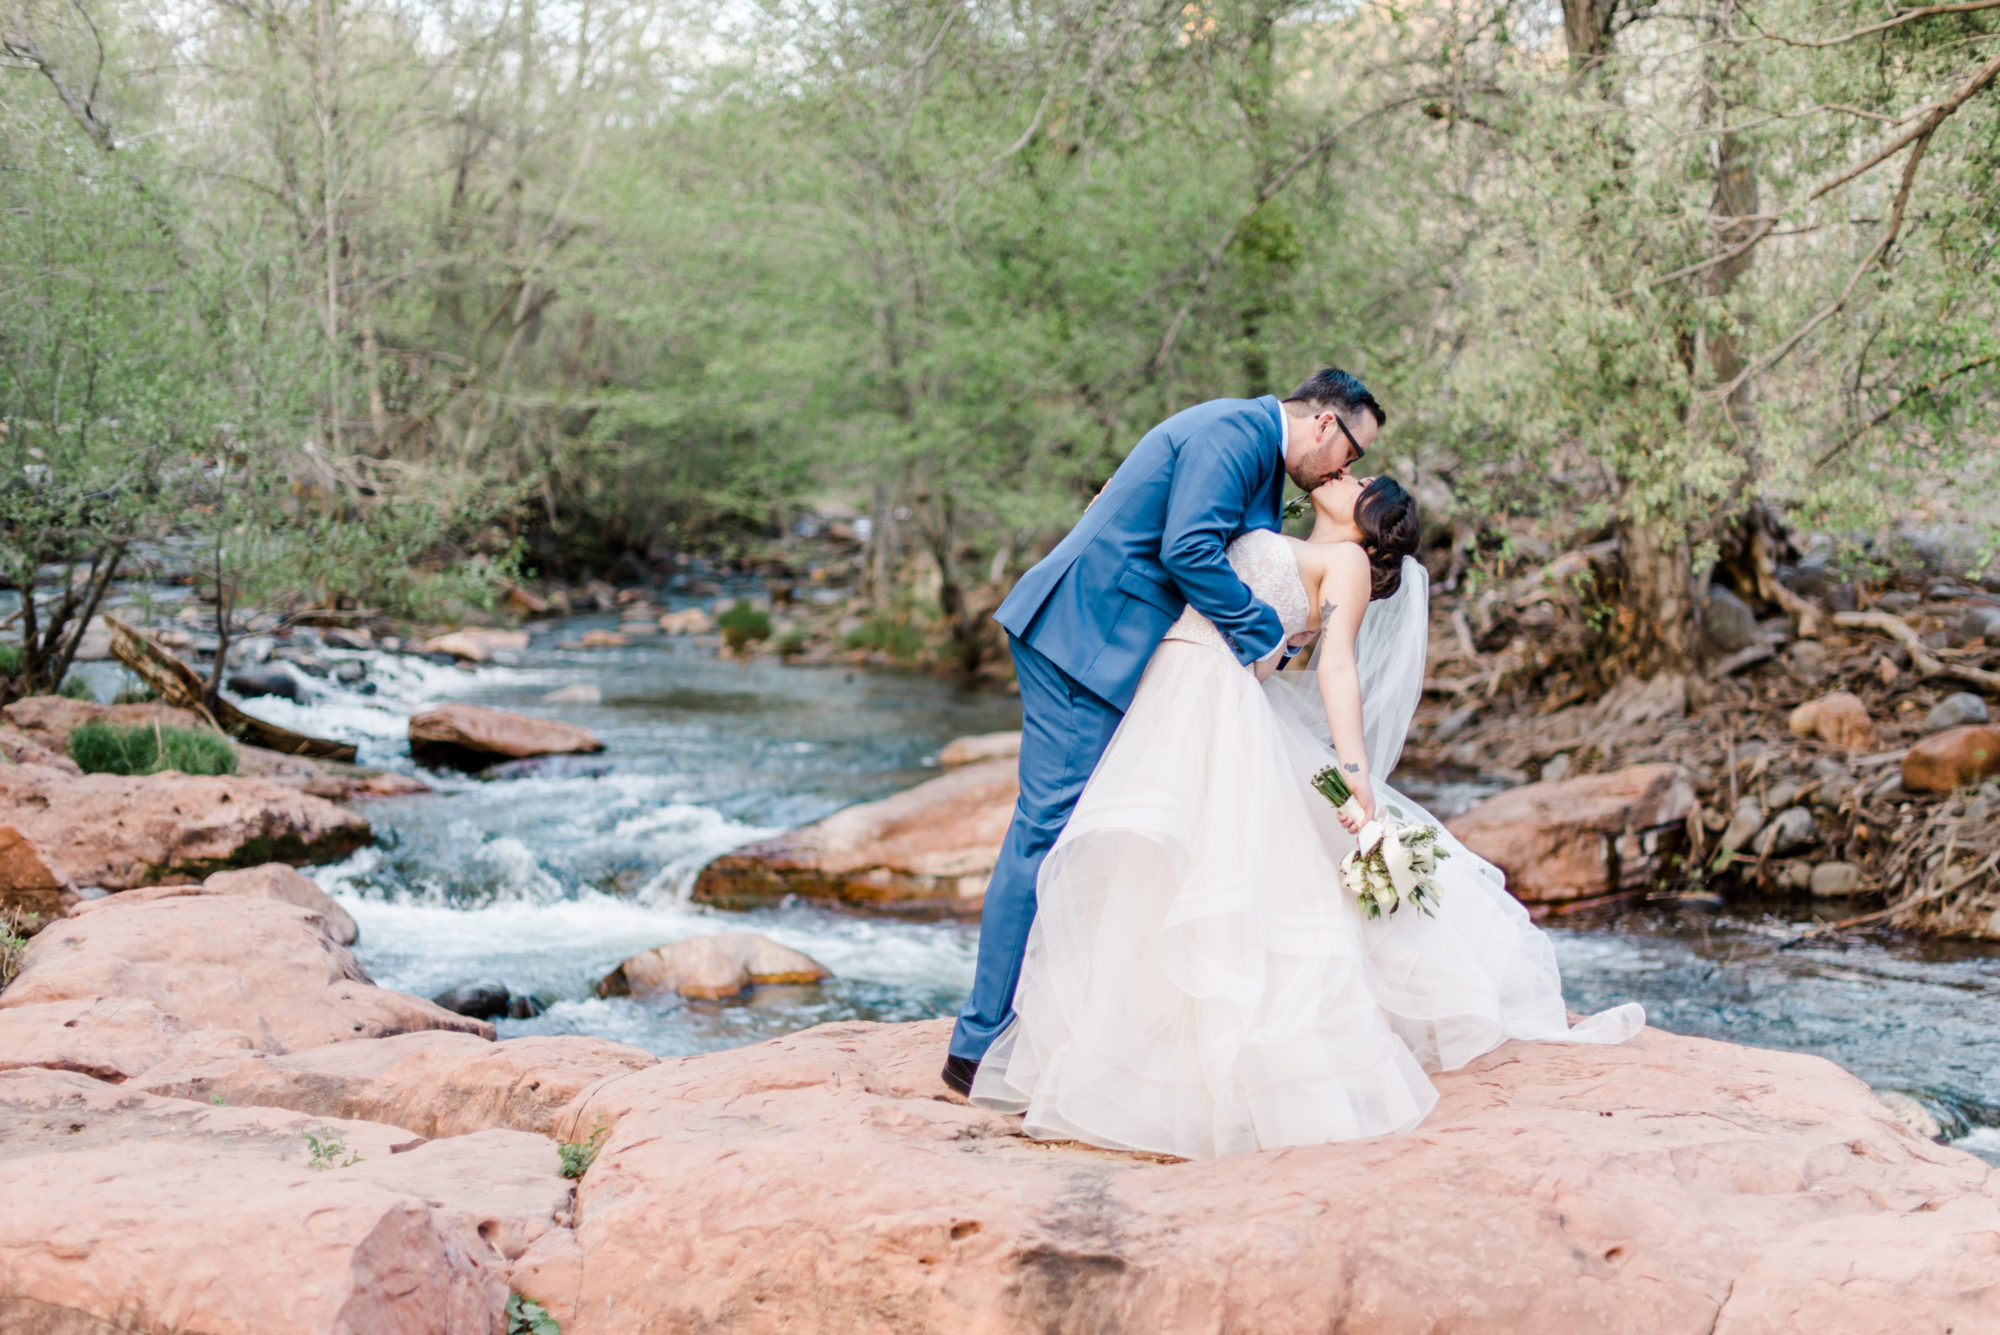 Lovelee Photography & The Arizona Wedding Experience